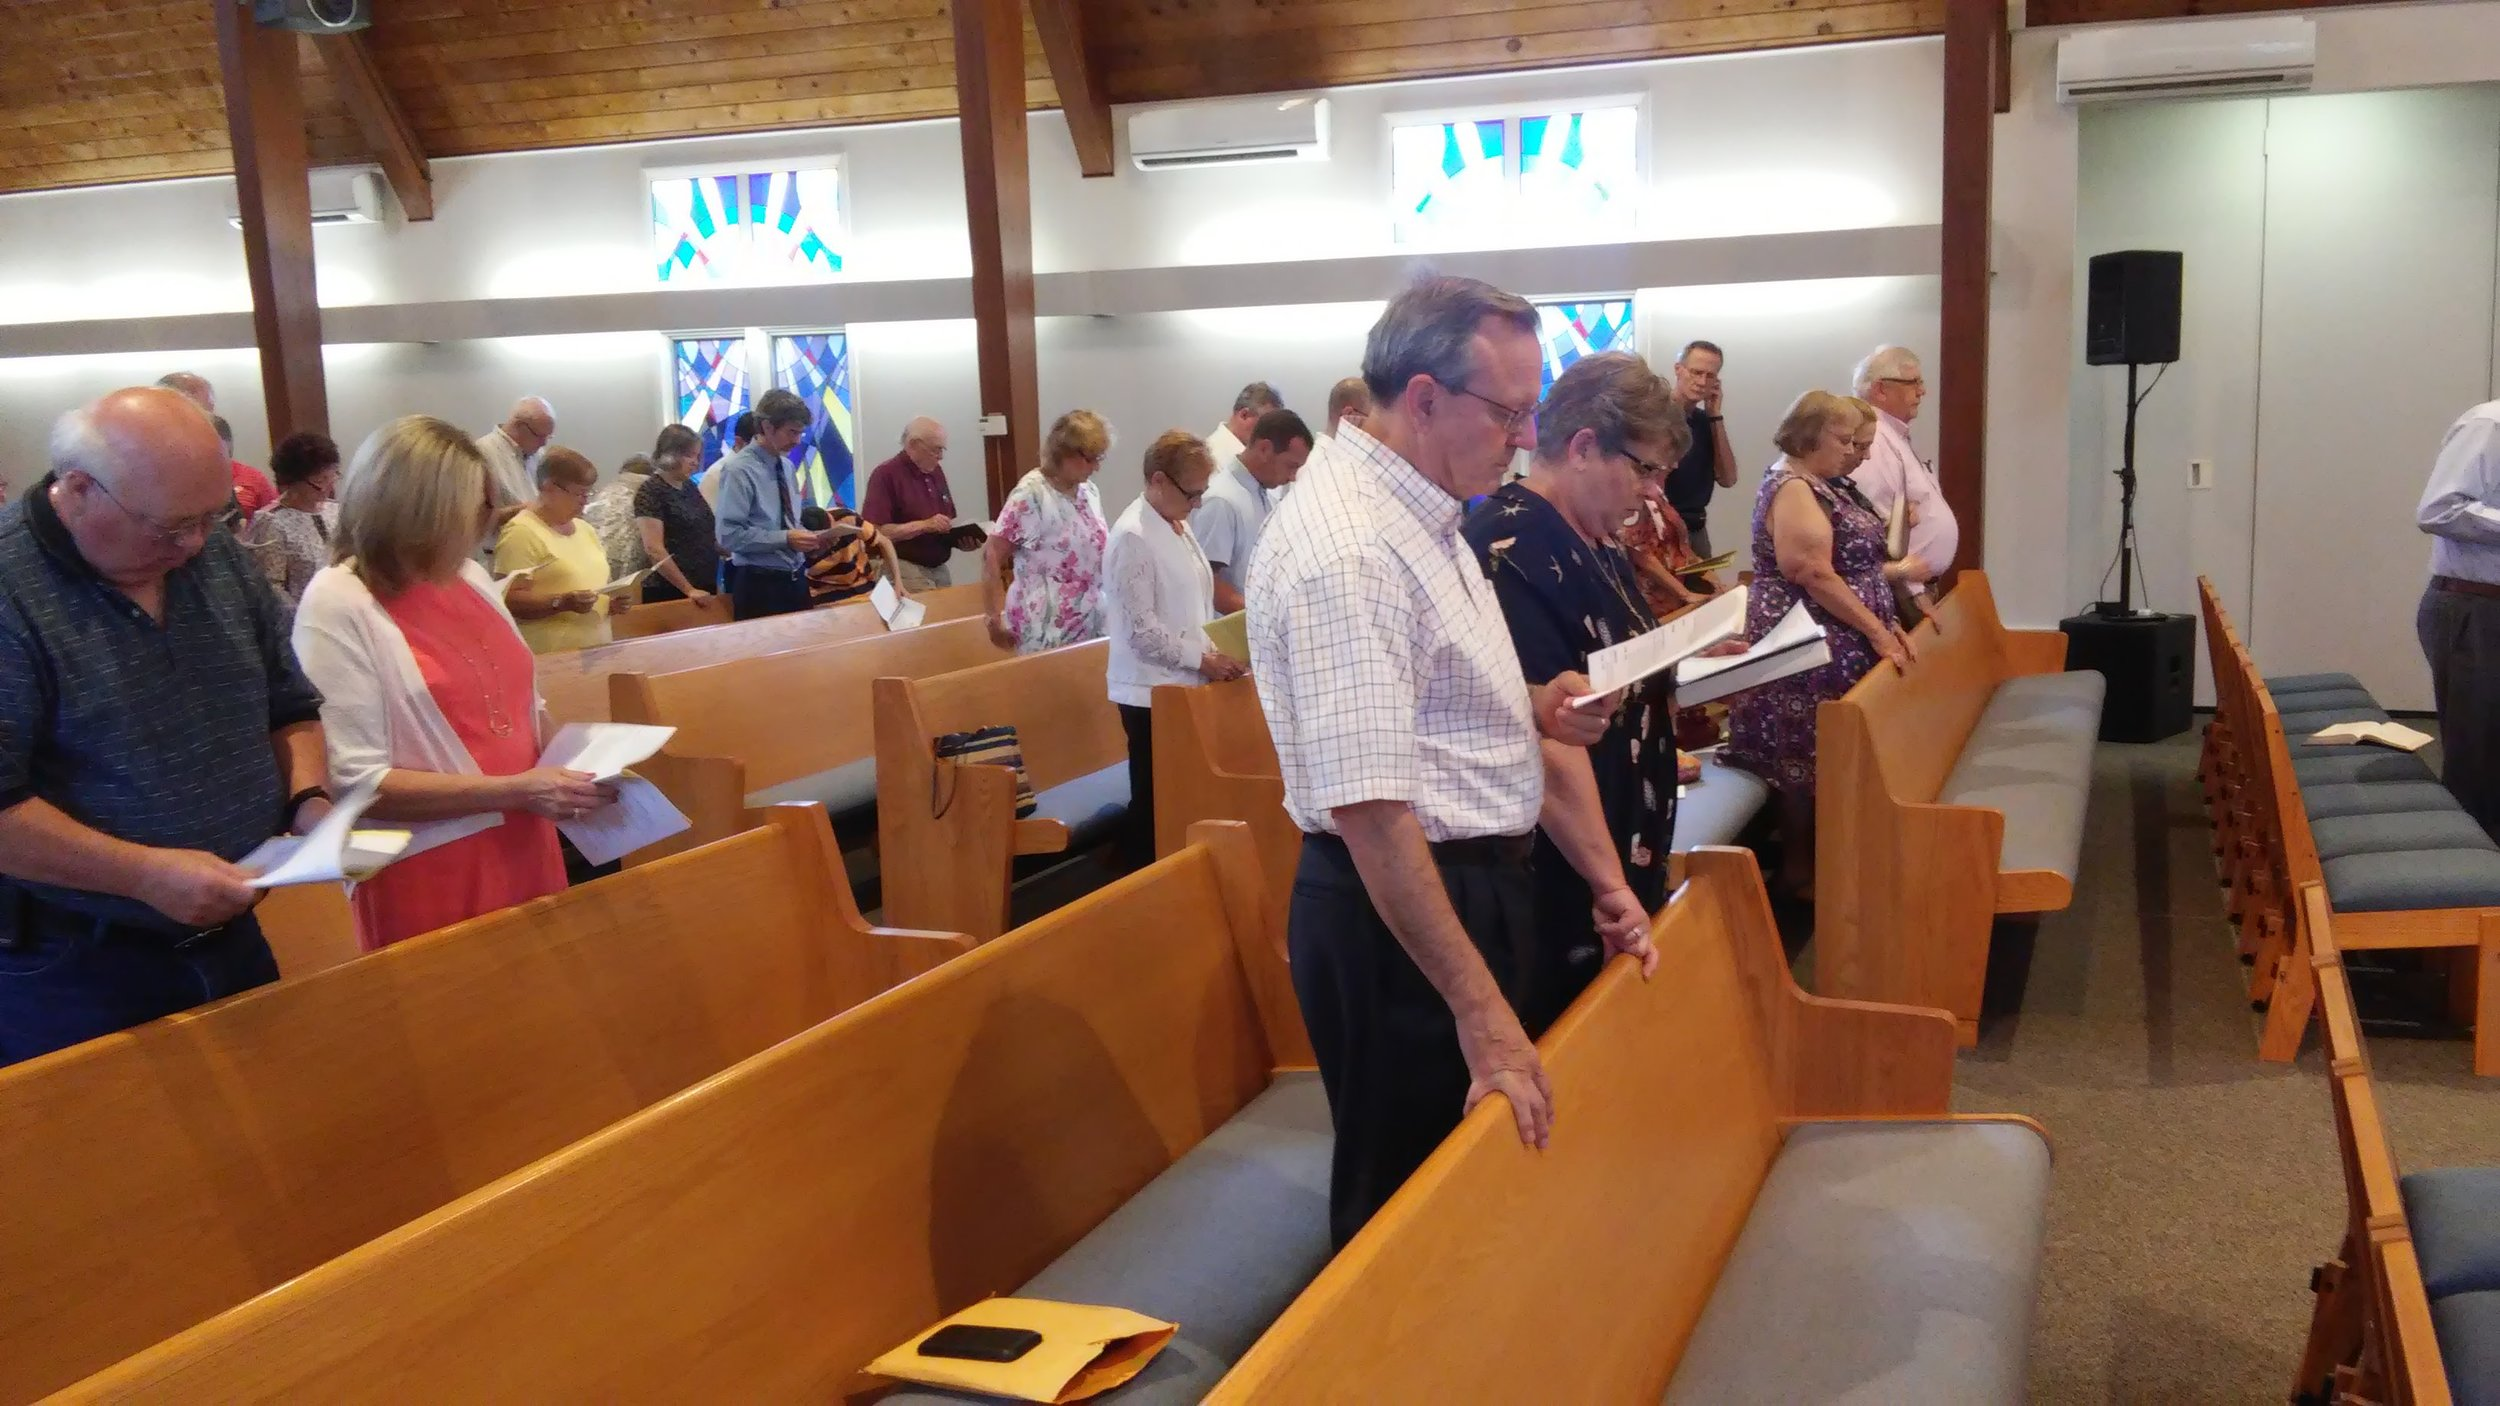 We have a choir. - We are quite proud of our choir and they frequently bless us in worship. Normally the early service includes some sort of special music, a solo or duet, while our late service features our choir.